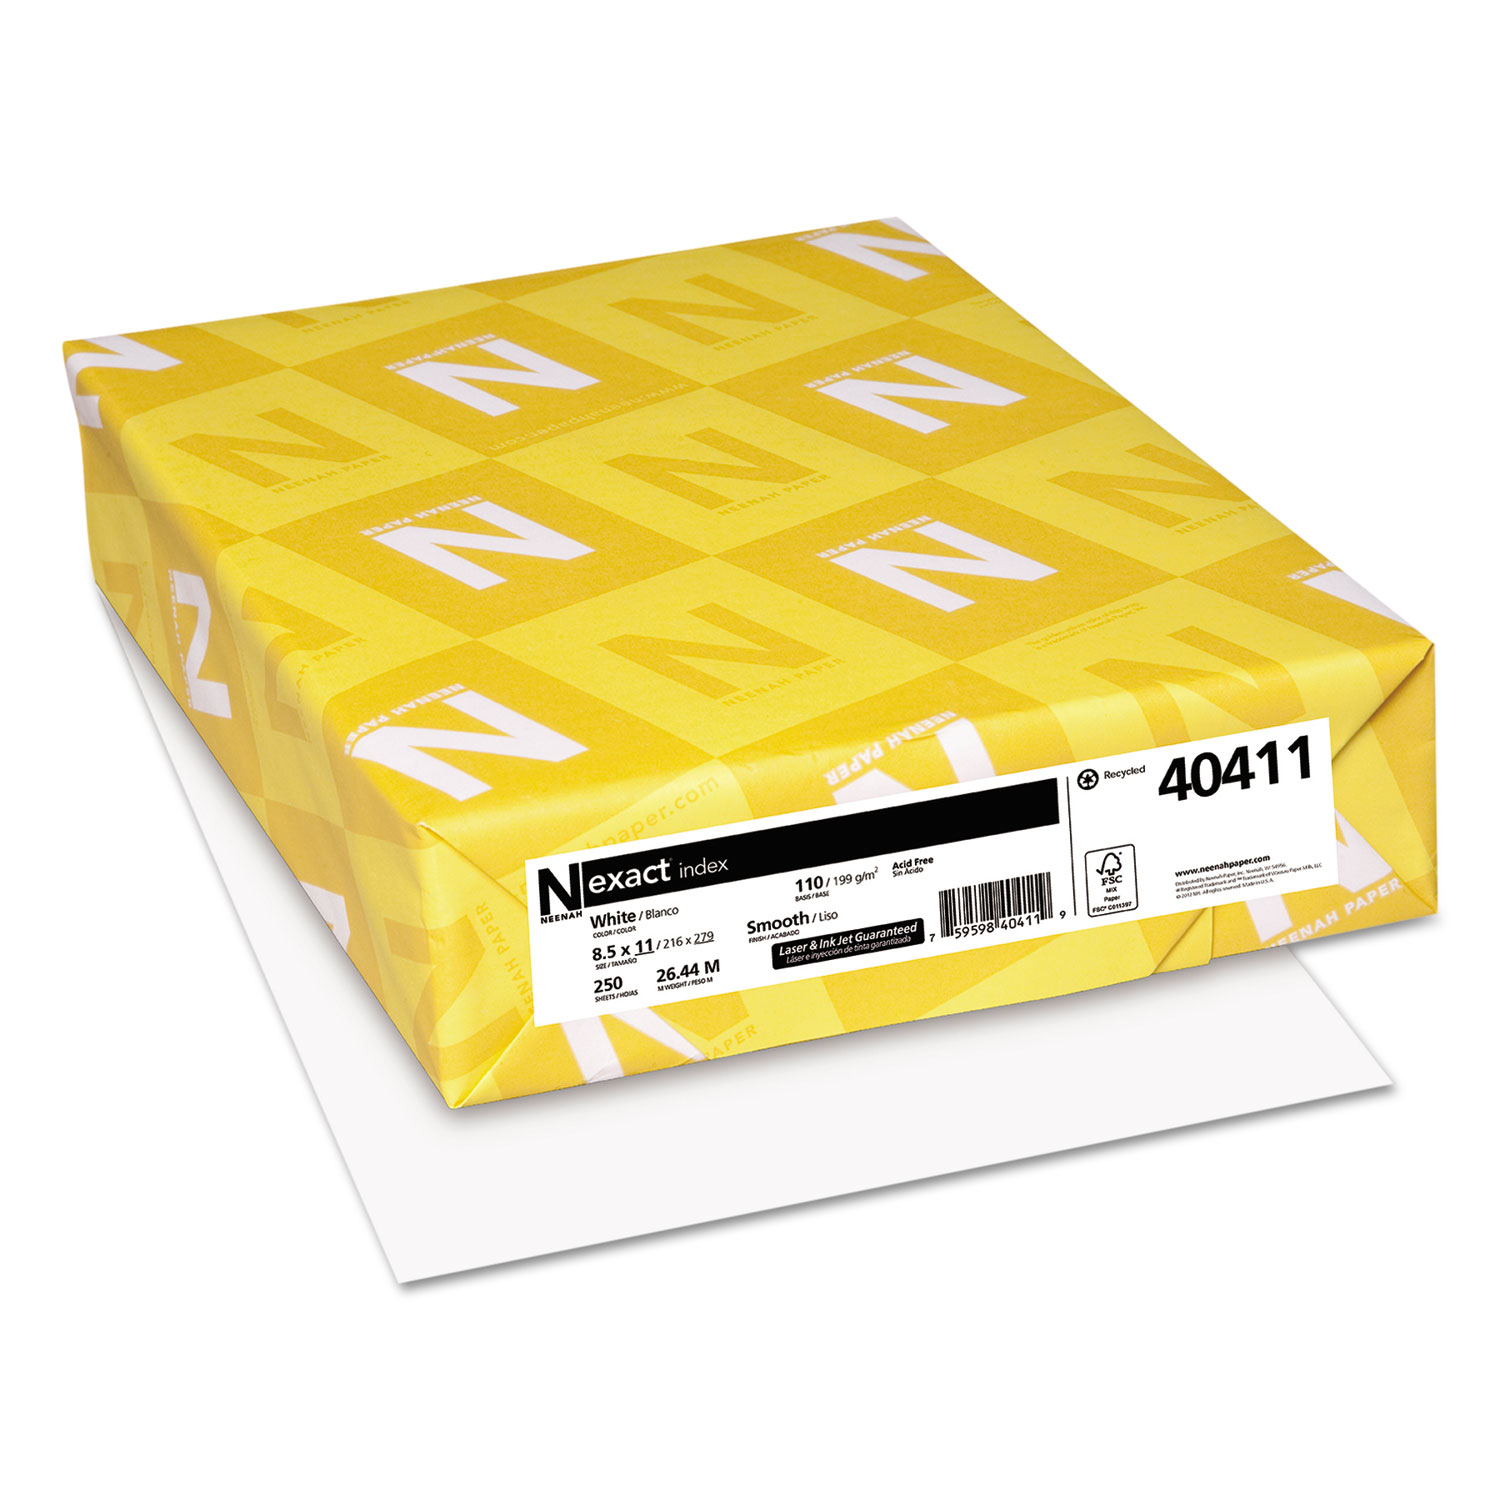 Exact Index Card Stock, 94 Bright, 110lb, 8.5 x 11, White, 250/Pack